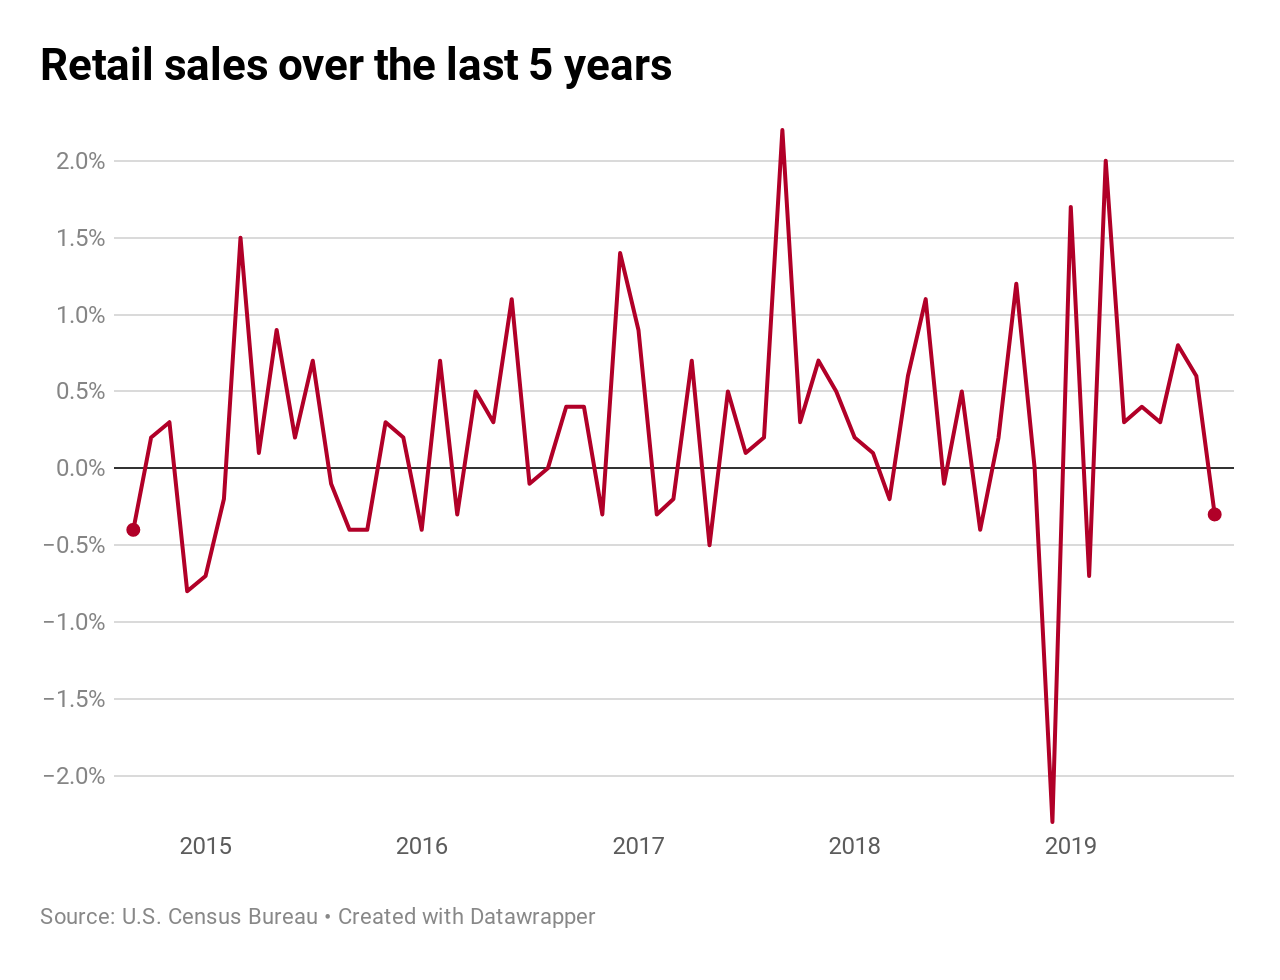 gbcn1-retail-sales-over-the-last-5-years